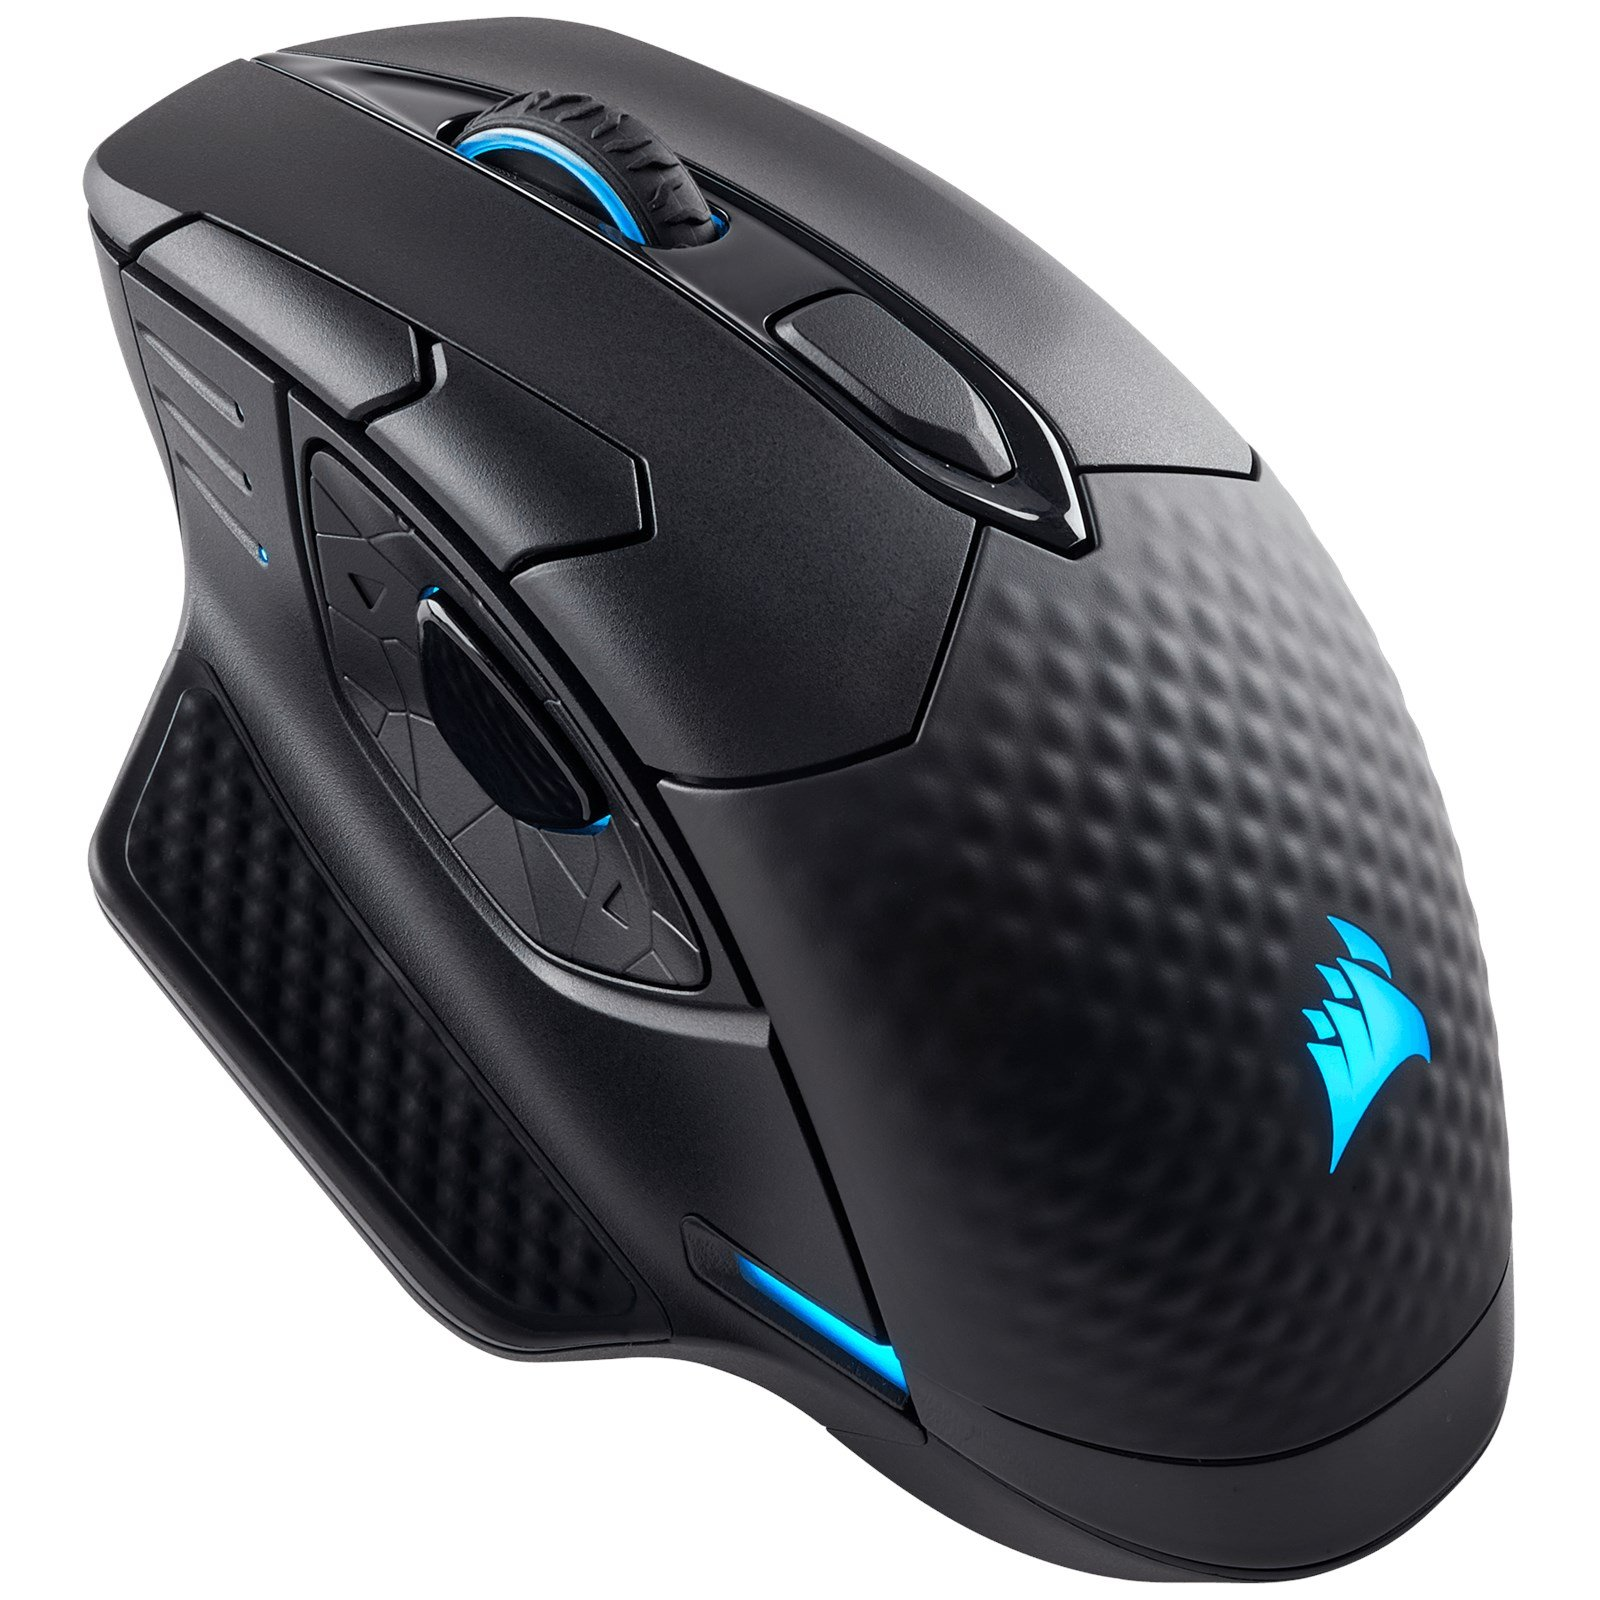 f9eff9db481 Corsair Dark Core RGB SE Performance Wired/Wireless Gaming Mouse - with Qi  Wireless Charging (EU)